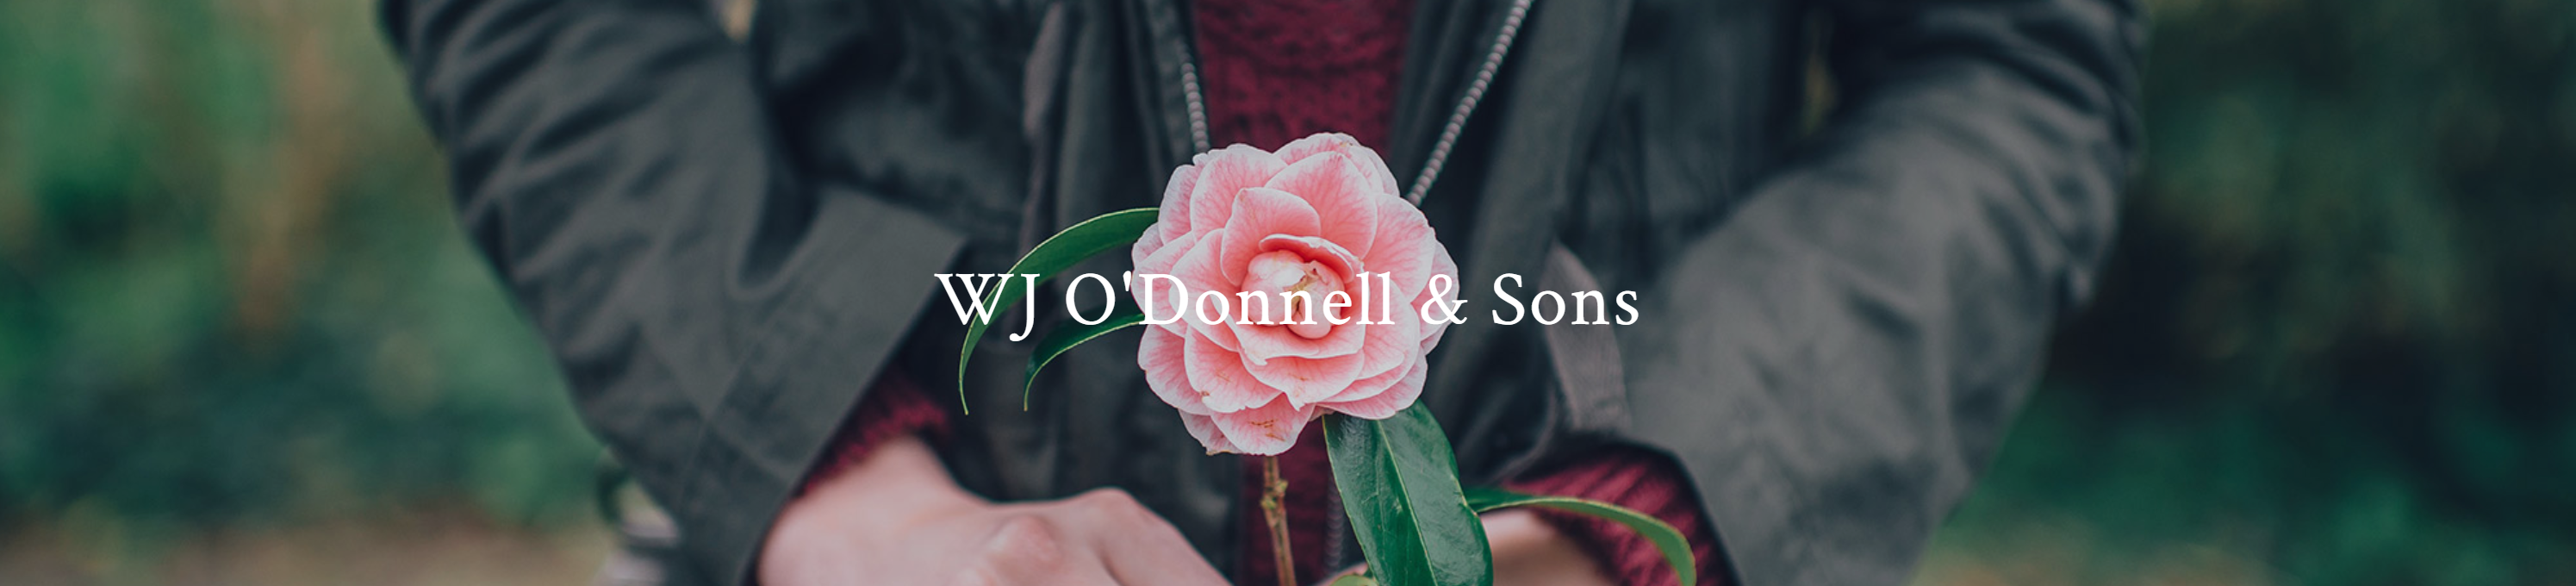 wj o donnell and sons funeral directors finance loan ballymena antrim